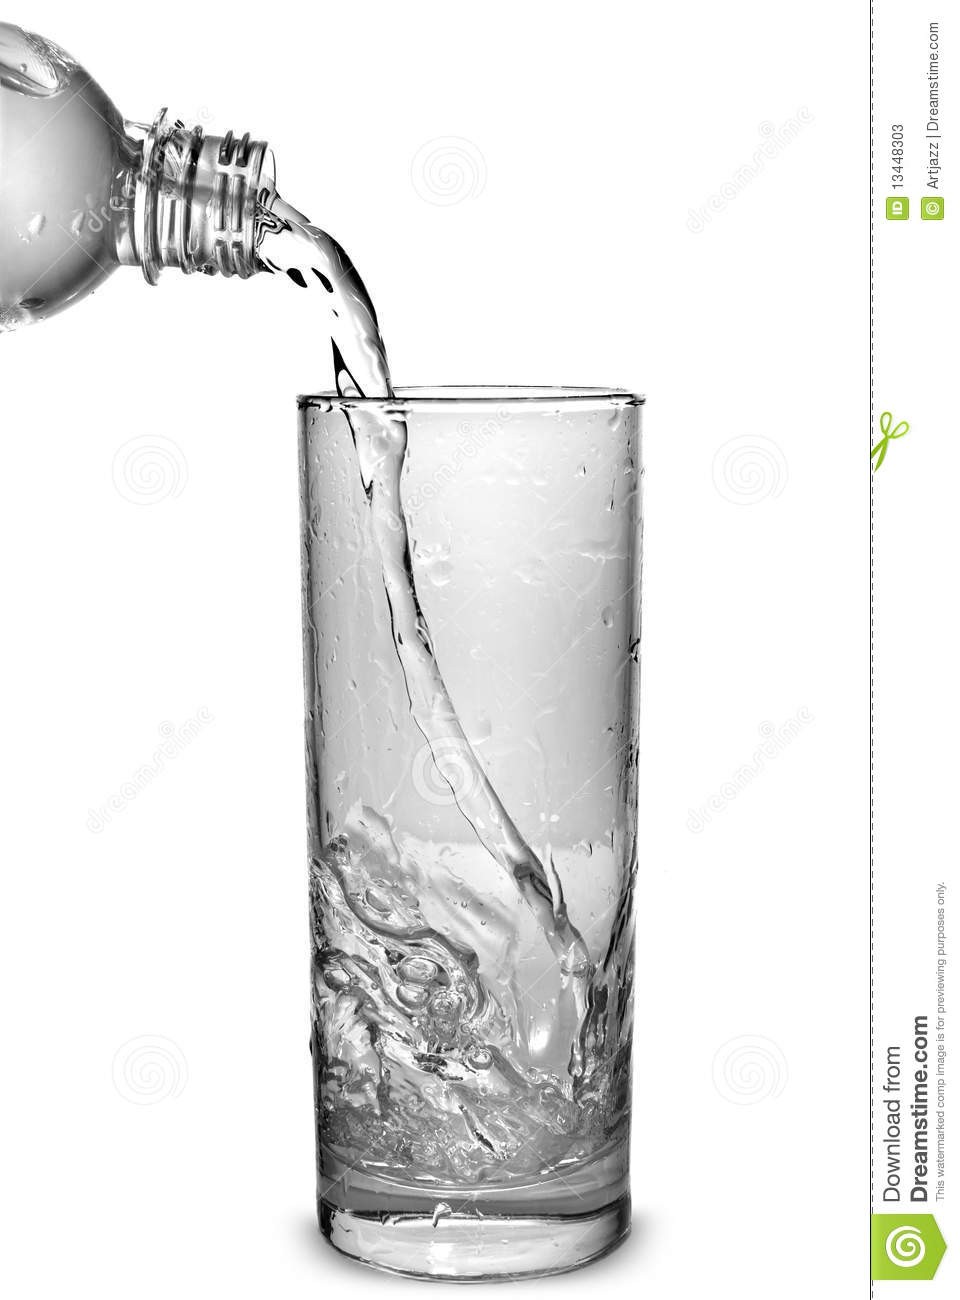 water pouring into glass stock image image of bubble 13448303